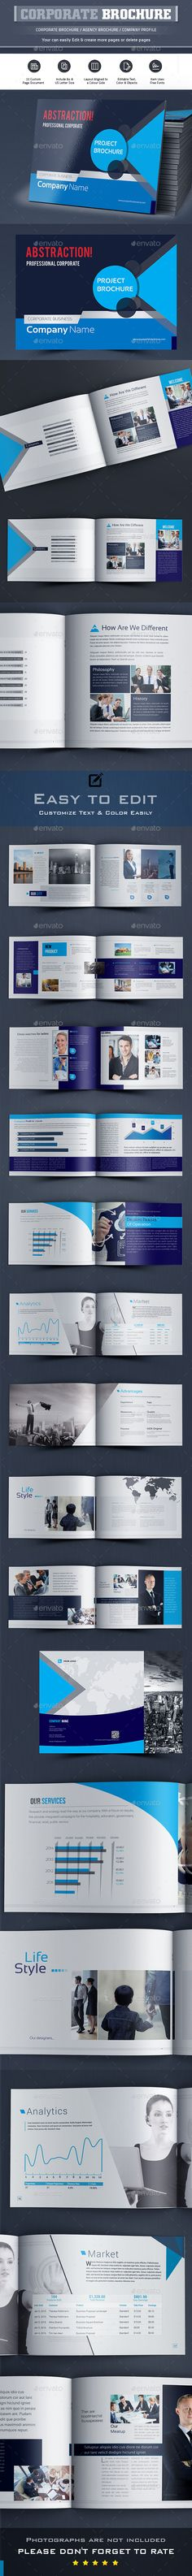 A5 Business Brochure / Catalog Template 	InDesign INDD. Download here: http://graphicriver.net/item/a5-business-brochurecatalog-/16055727?ref=ksioks